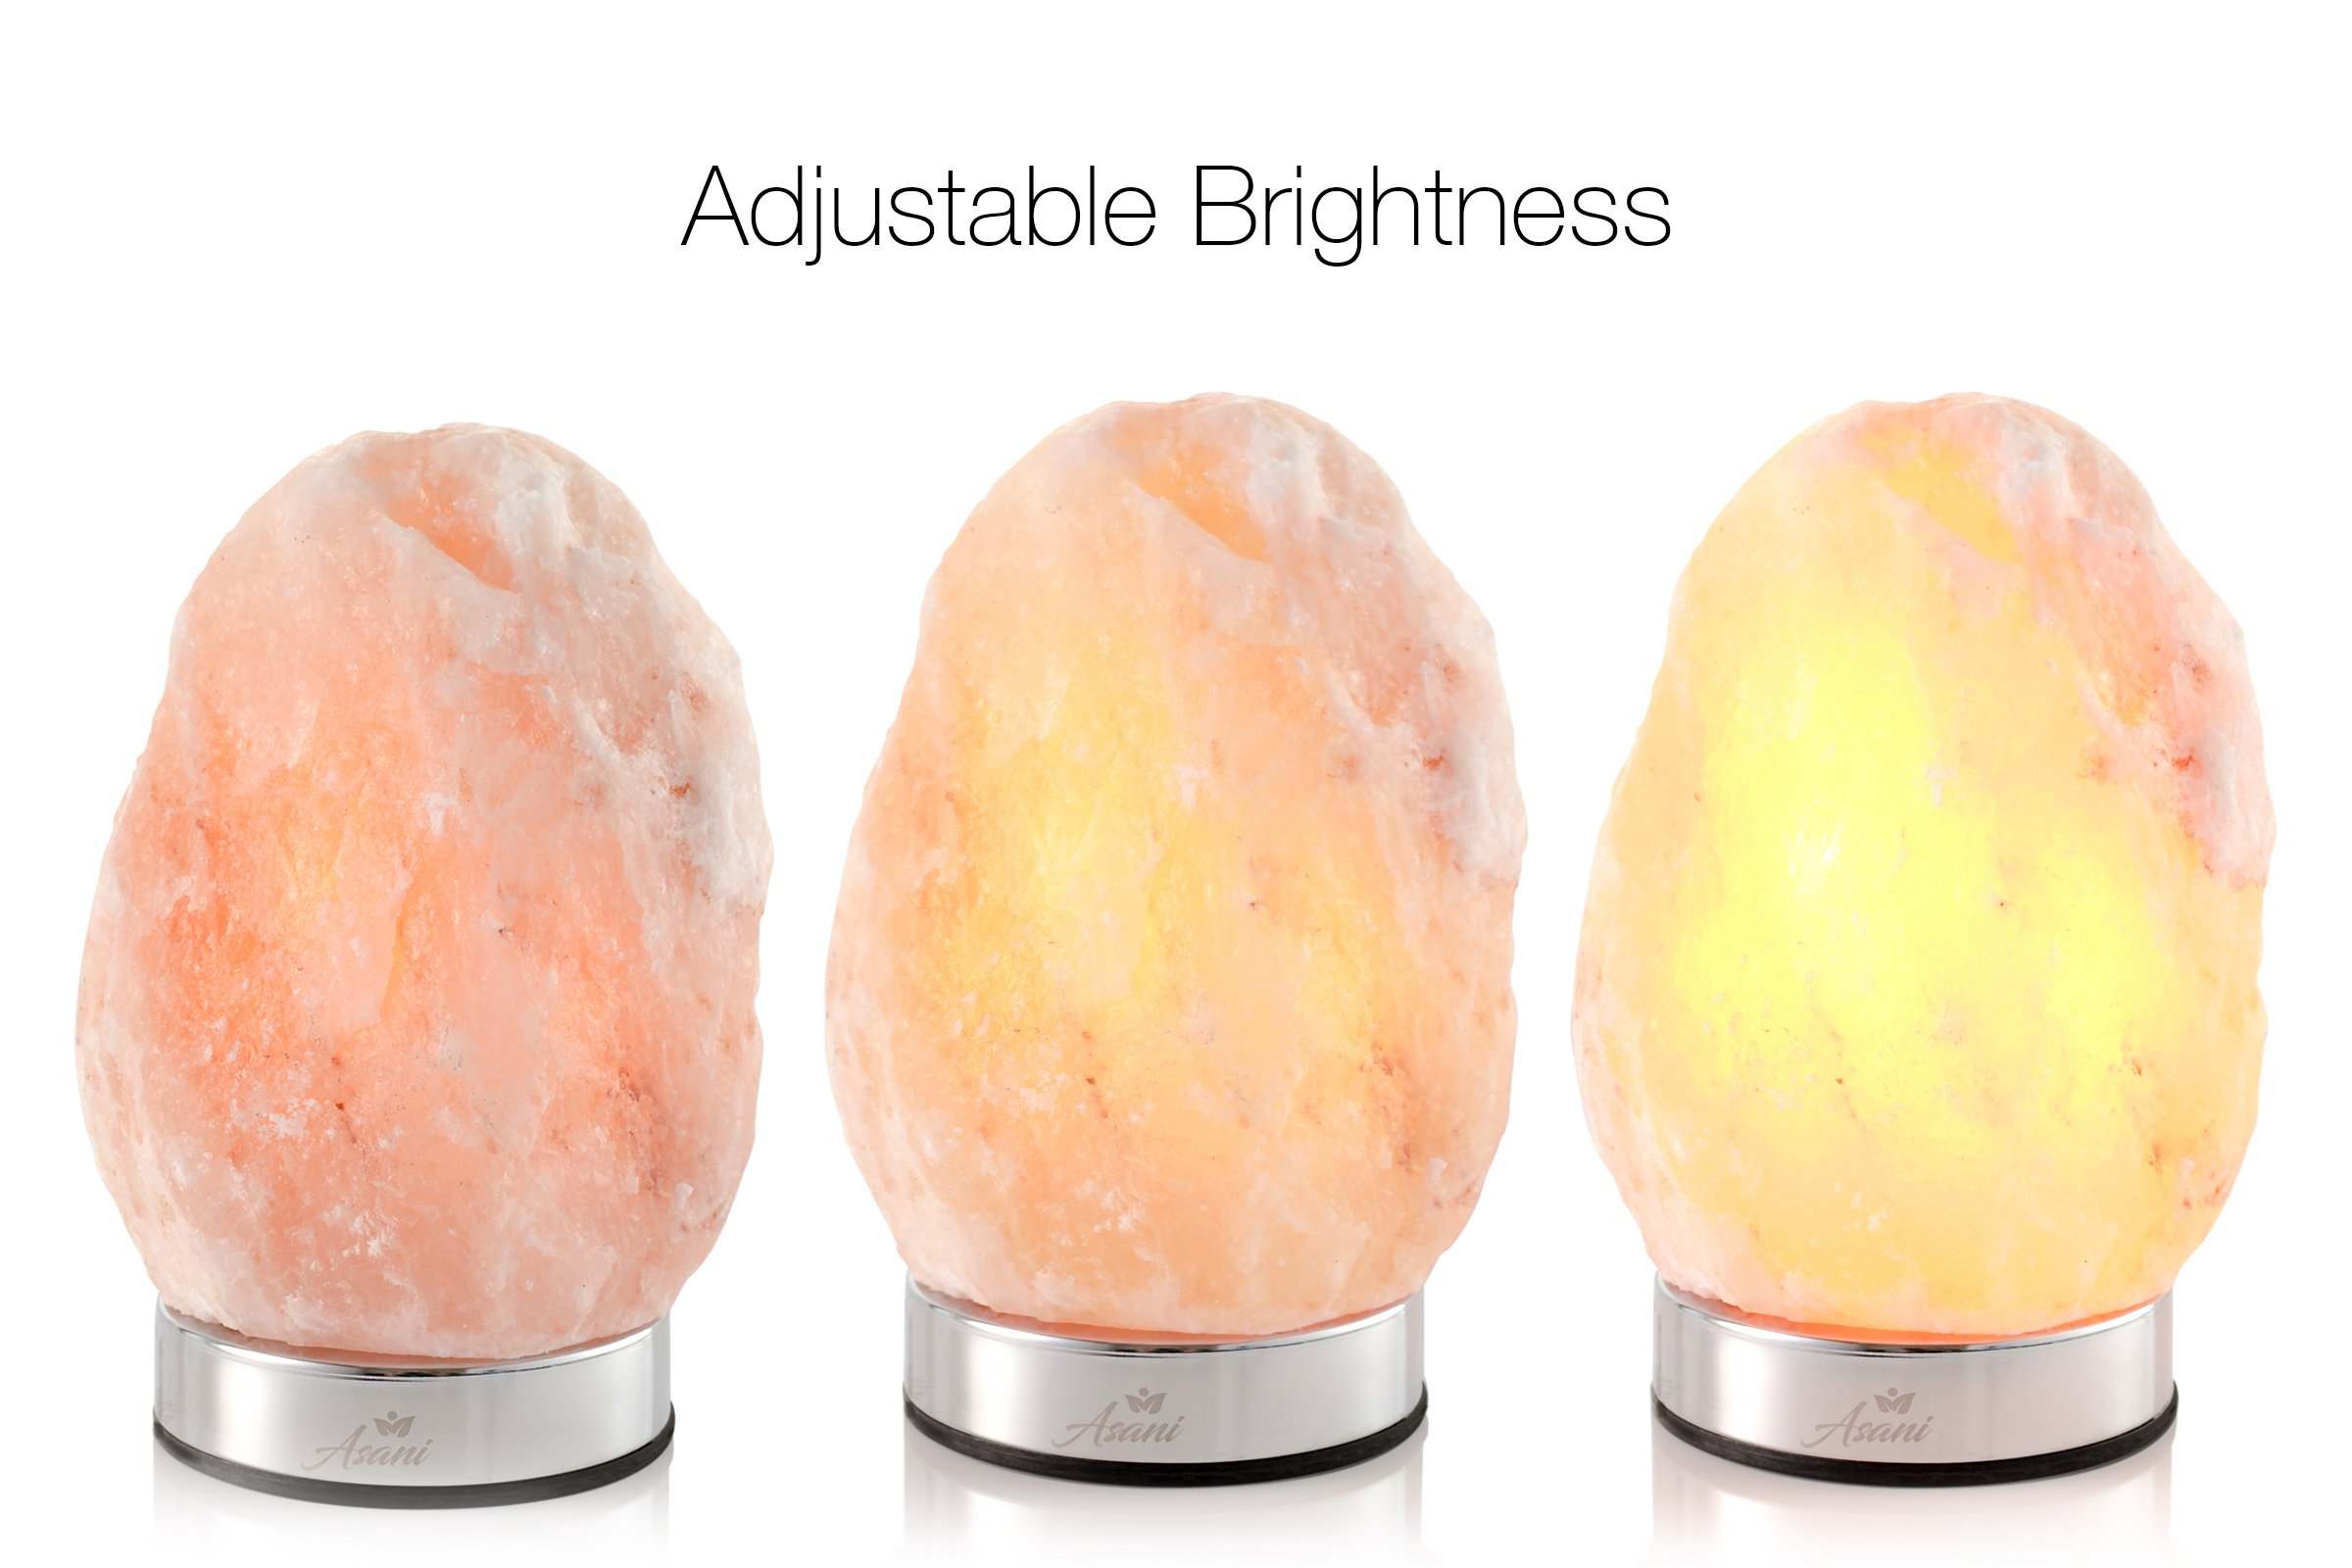 Asani Himalayan Light Salt Crystal Lamp (7-11 lbs, 8-10'' Height) WITH FREE GIFT BOX | Metal Dimmer Touch Base | Hand Crafted Ionic HPS Pink Rock Lamps for Natural Air Purifying and Lighting by Asani (Image #2)